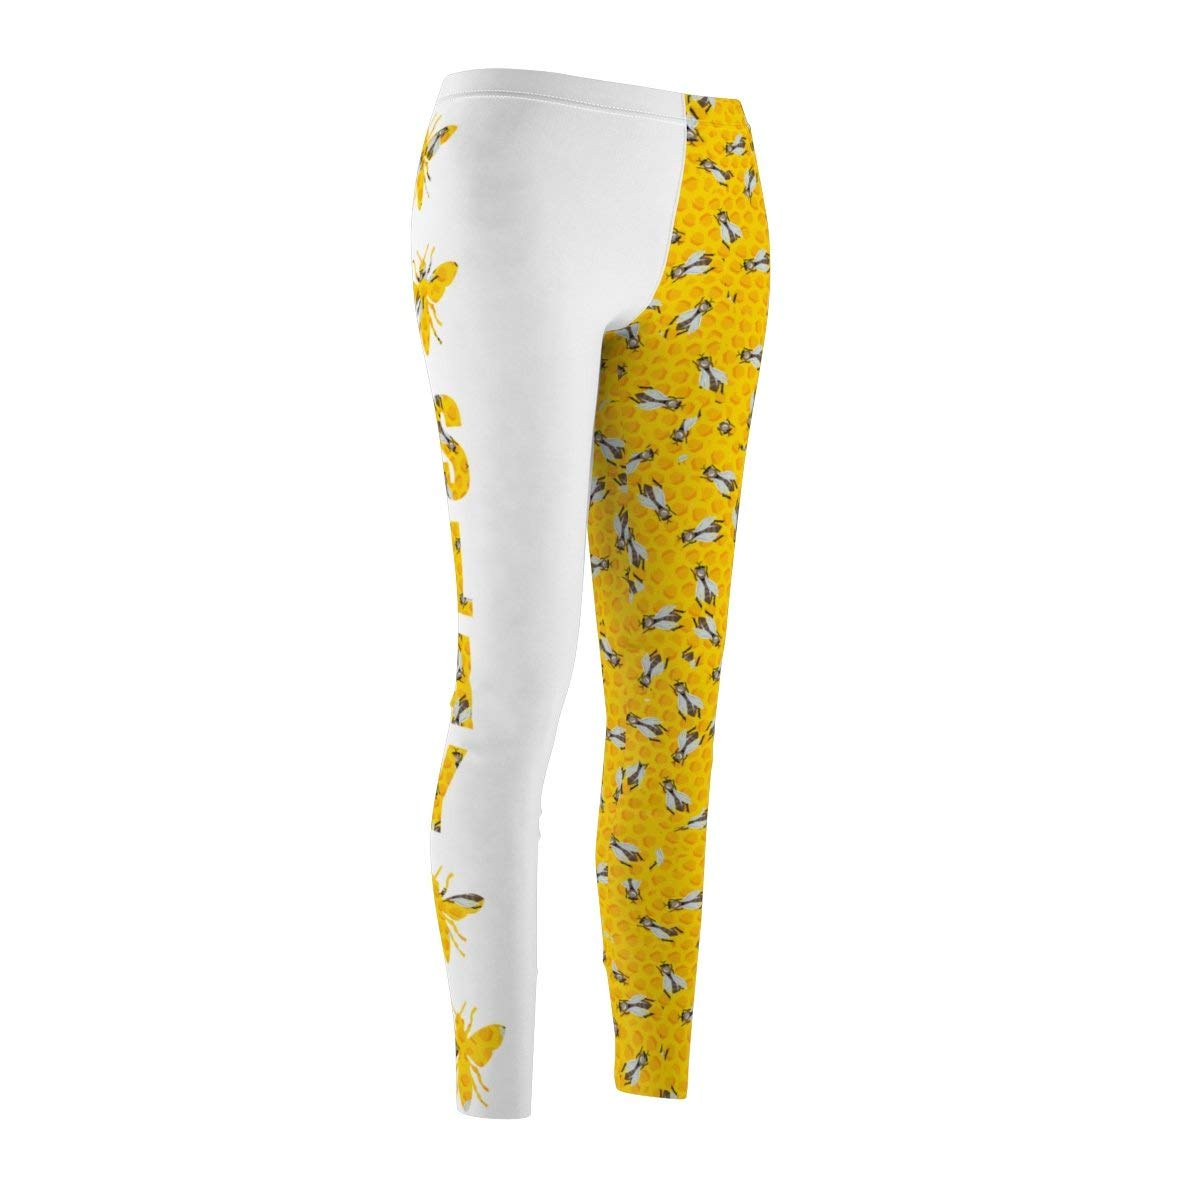 Fine Vintage Life Bey Hive Honey Comb Slay ONTRII Women's All Over Leggings - Two Tone White by Fine Vintage Life (Image #3)